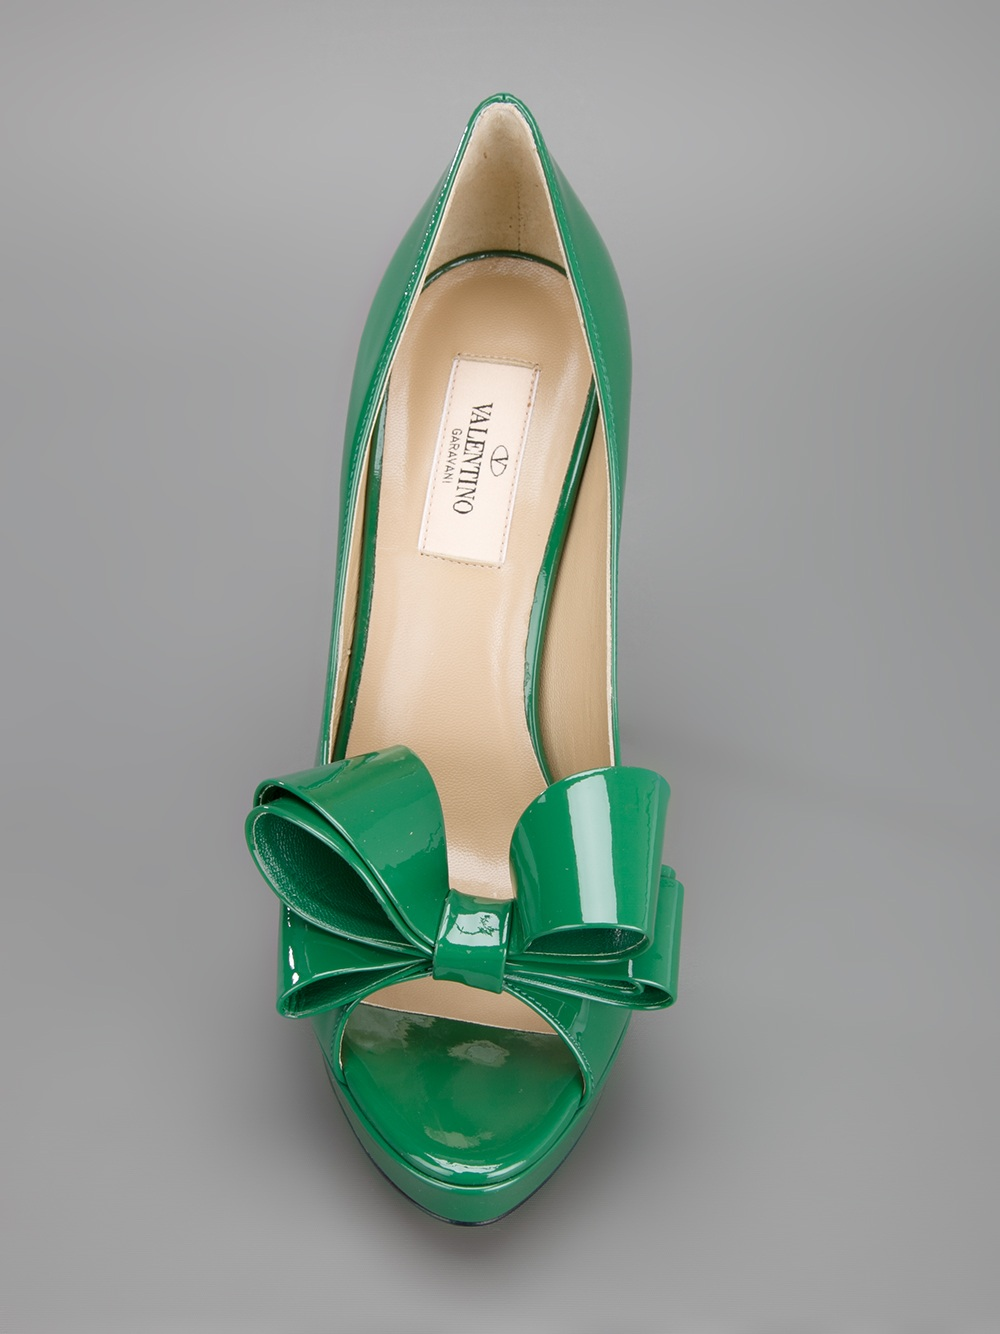 6dbe7347a5a4 Shoeniverse  VALENTINO Green Peep Toe Bow Pump